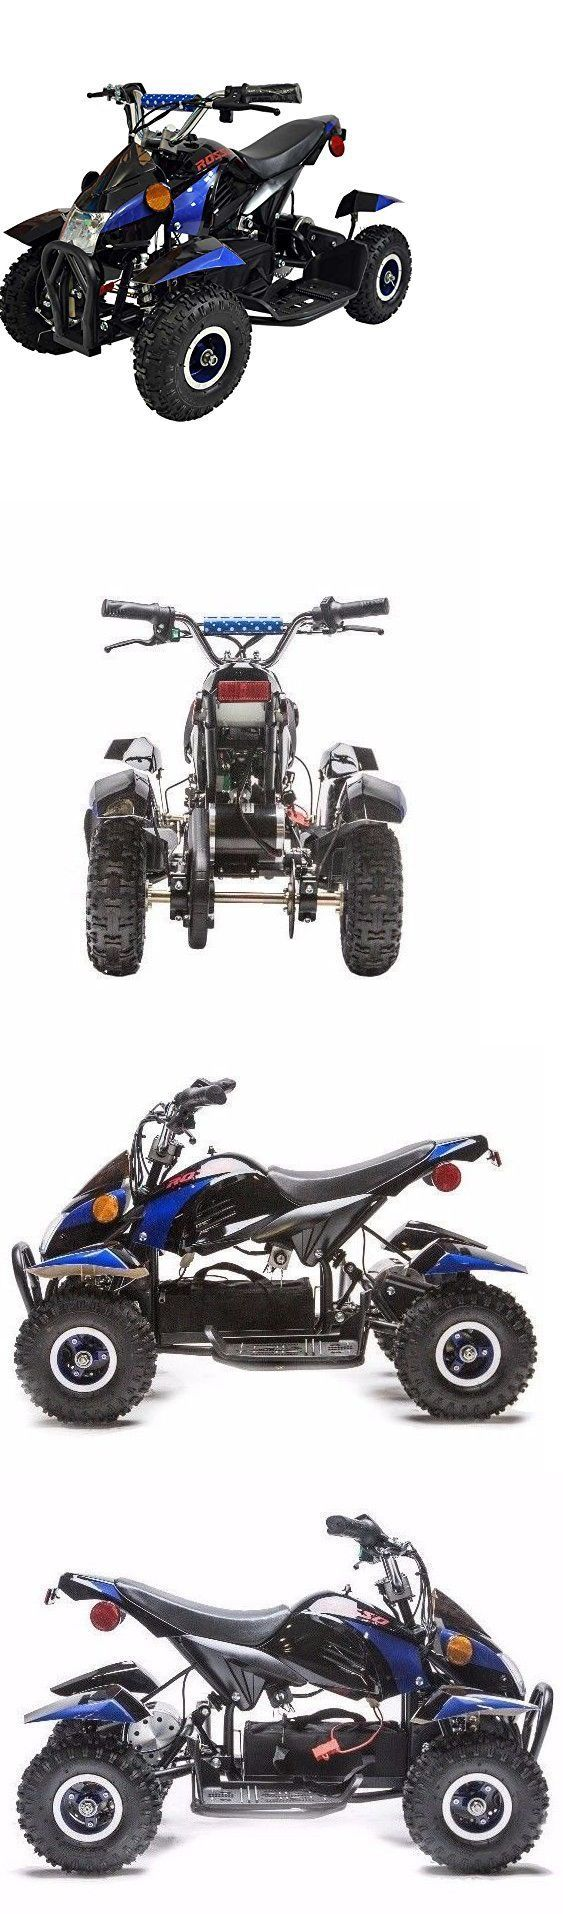 Ride On Toys and Accessories 145944: 500W Kids Atv Kids Quad 4 Wheeler Ride On With 36V Electric Battery For Kids -> BUY IT NOW ONLY: $497 on eBay!